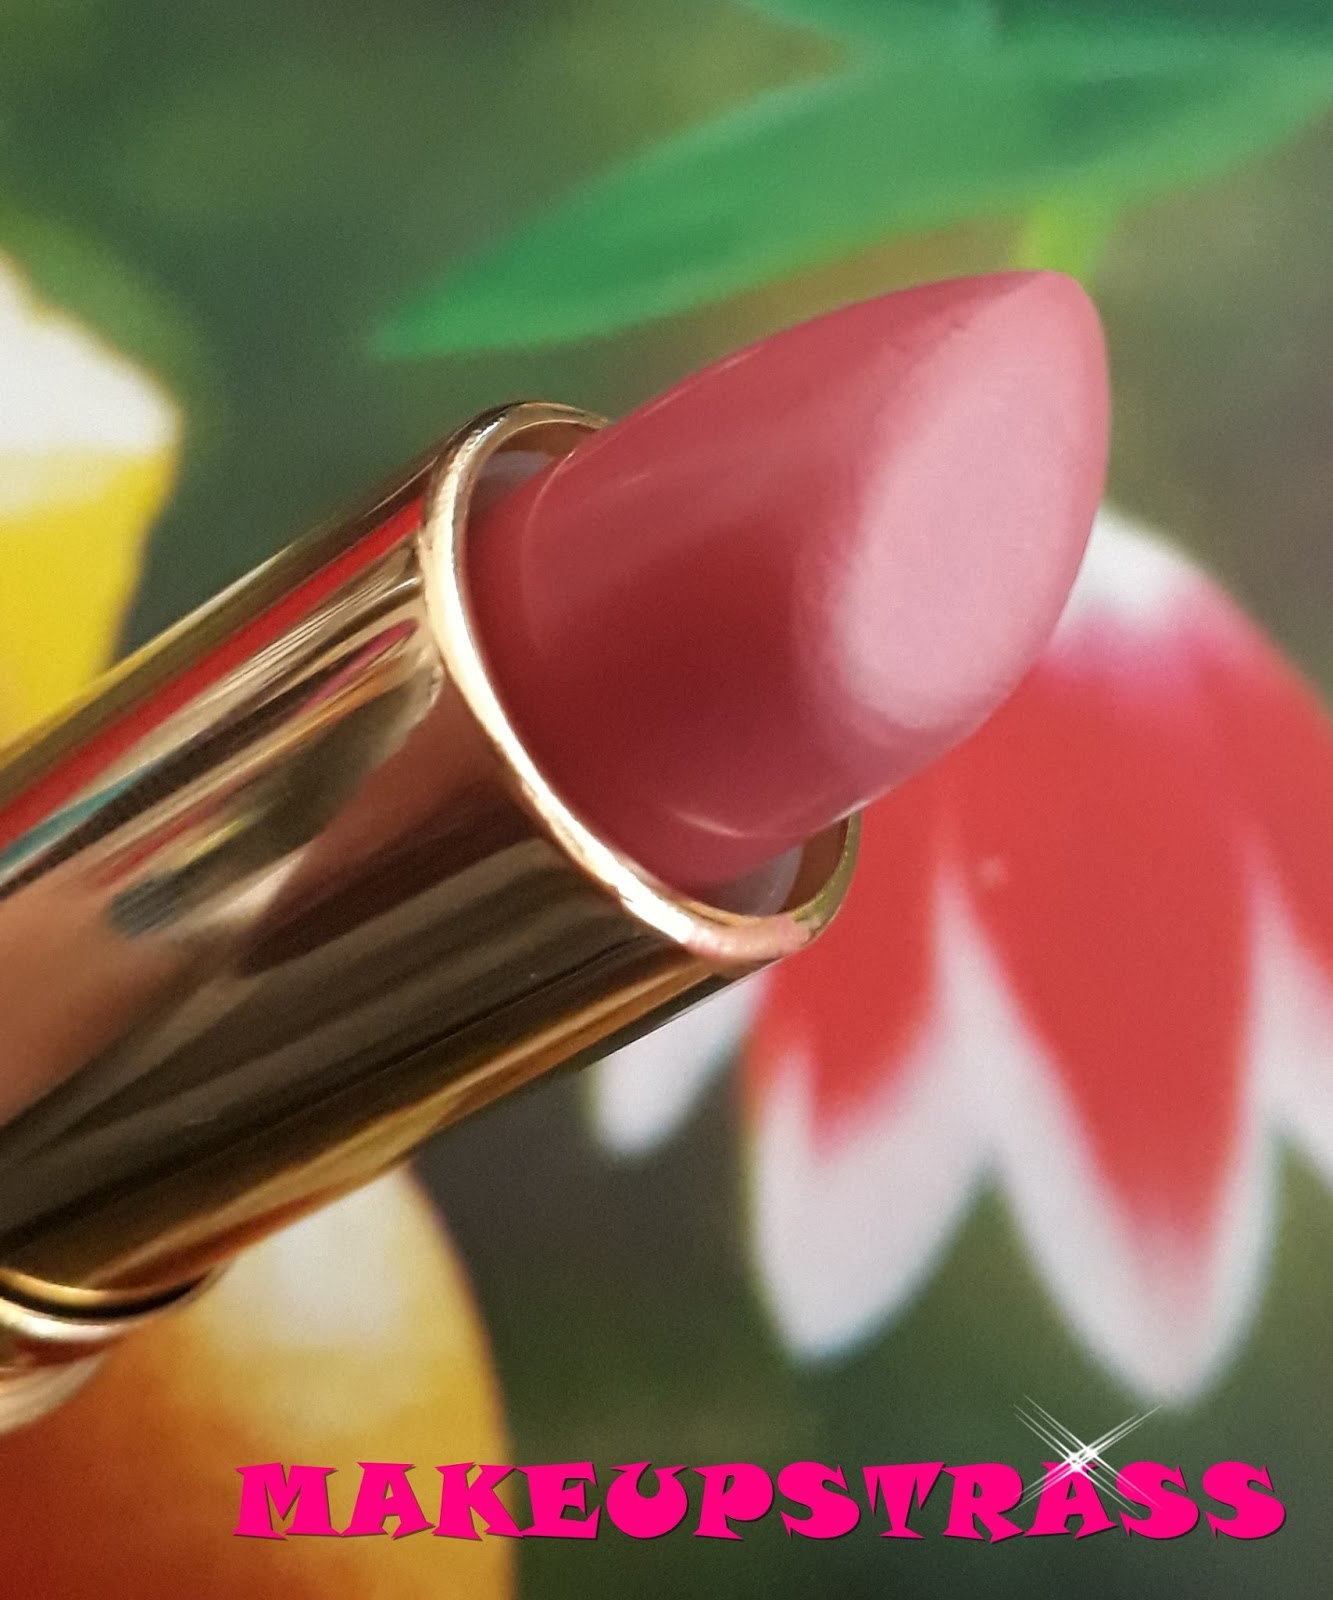 The Afternoon MakeupstrassRossetto Pink N°415 Revlon In H2IYeW9ED